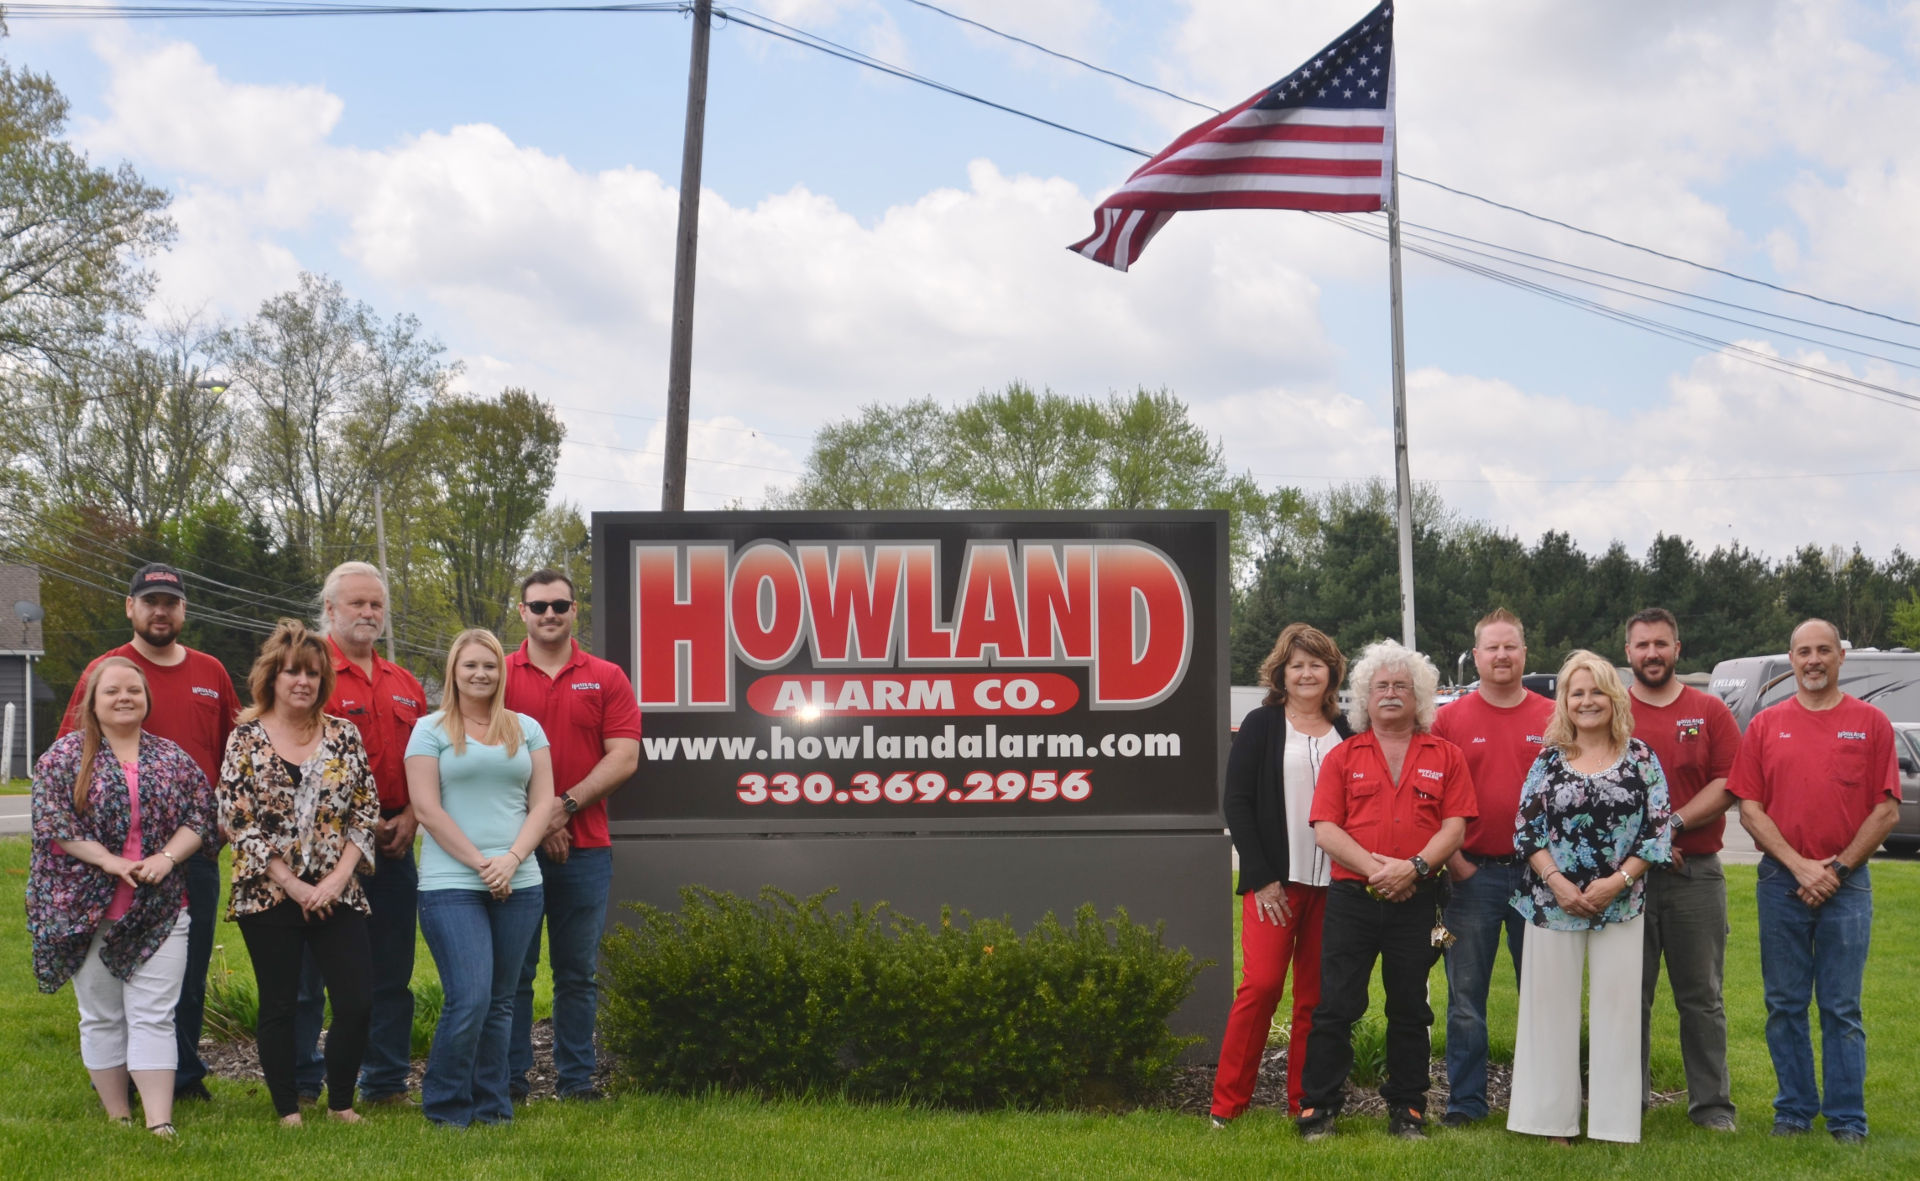 Howland Alarm Company Photo